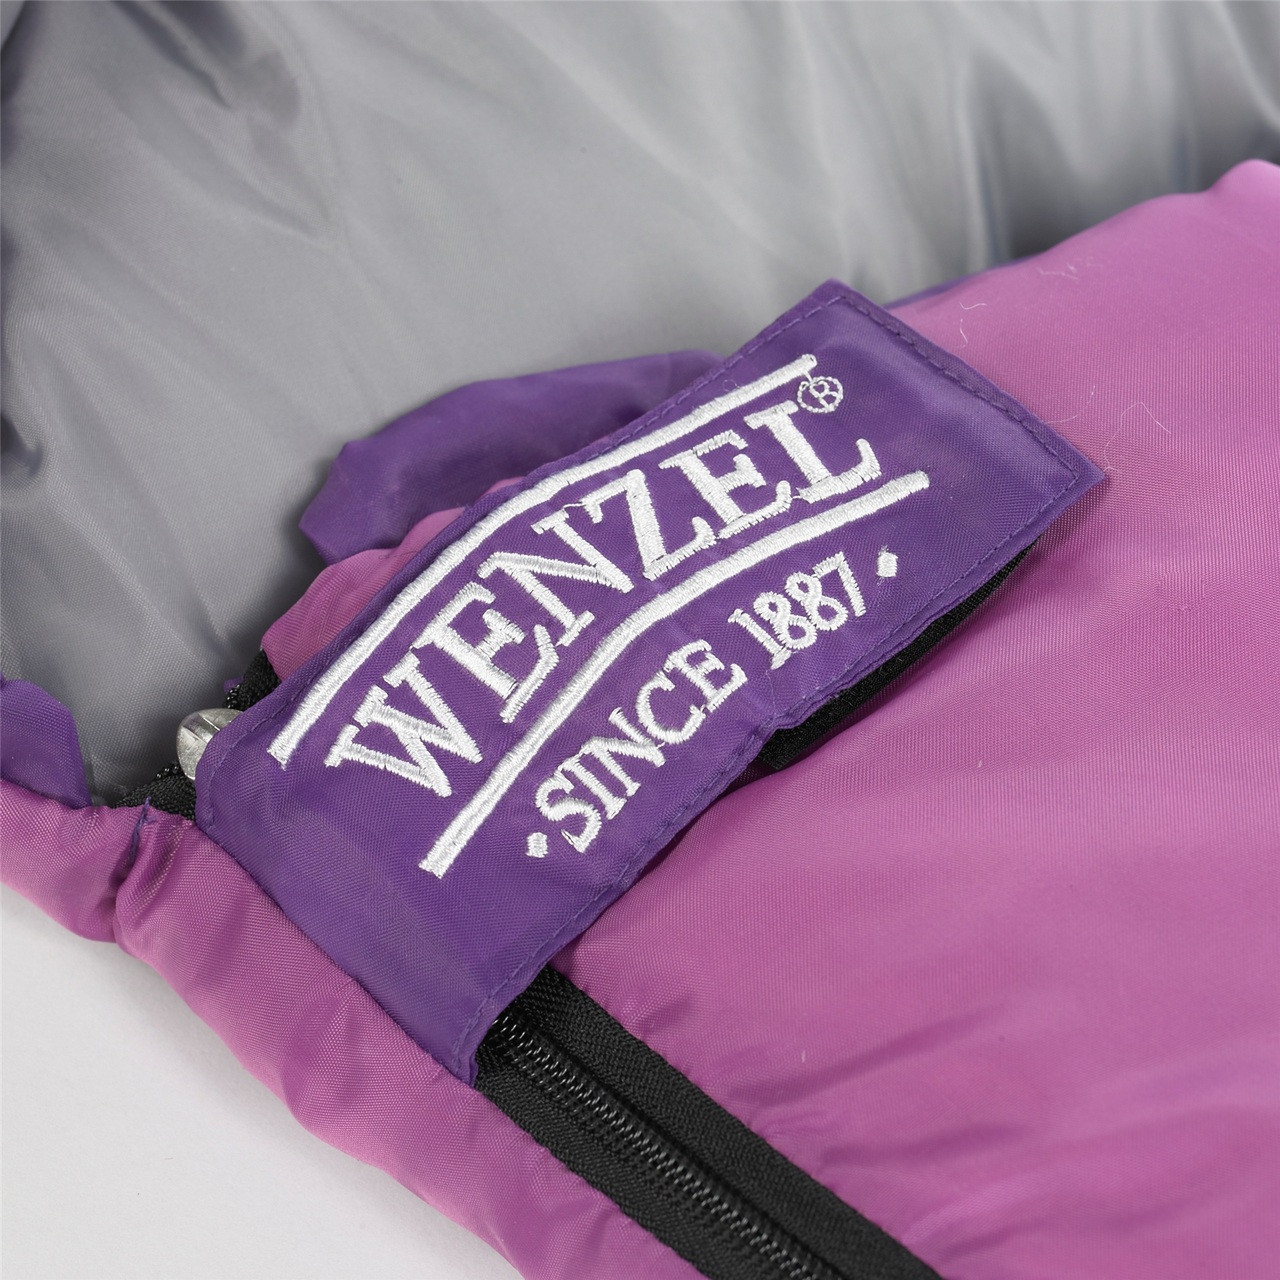 Close up view of the Velcro latch below the zipper on the Wenzel Kids Backyard 30 degree sleeping bag, purple